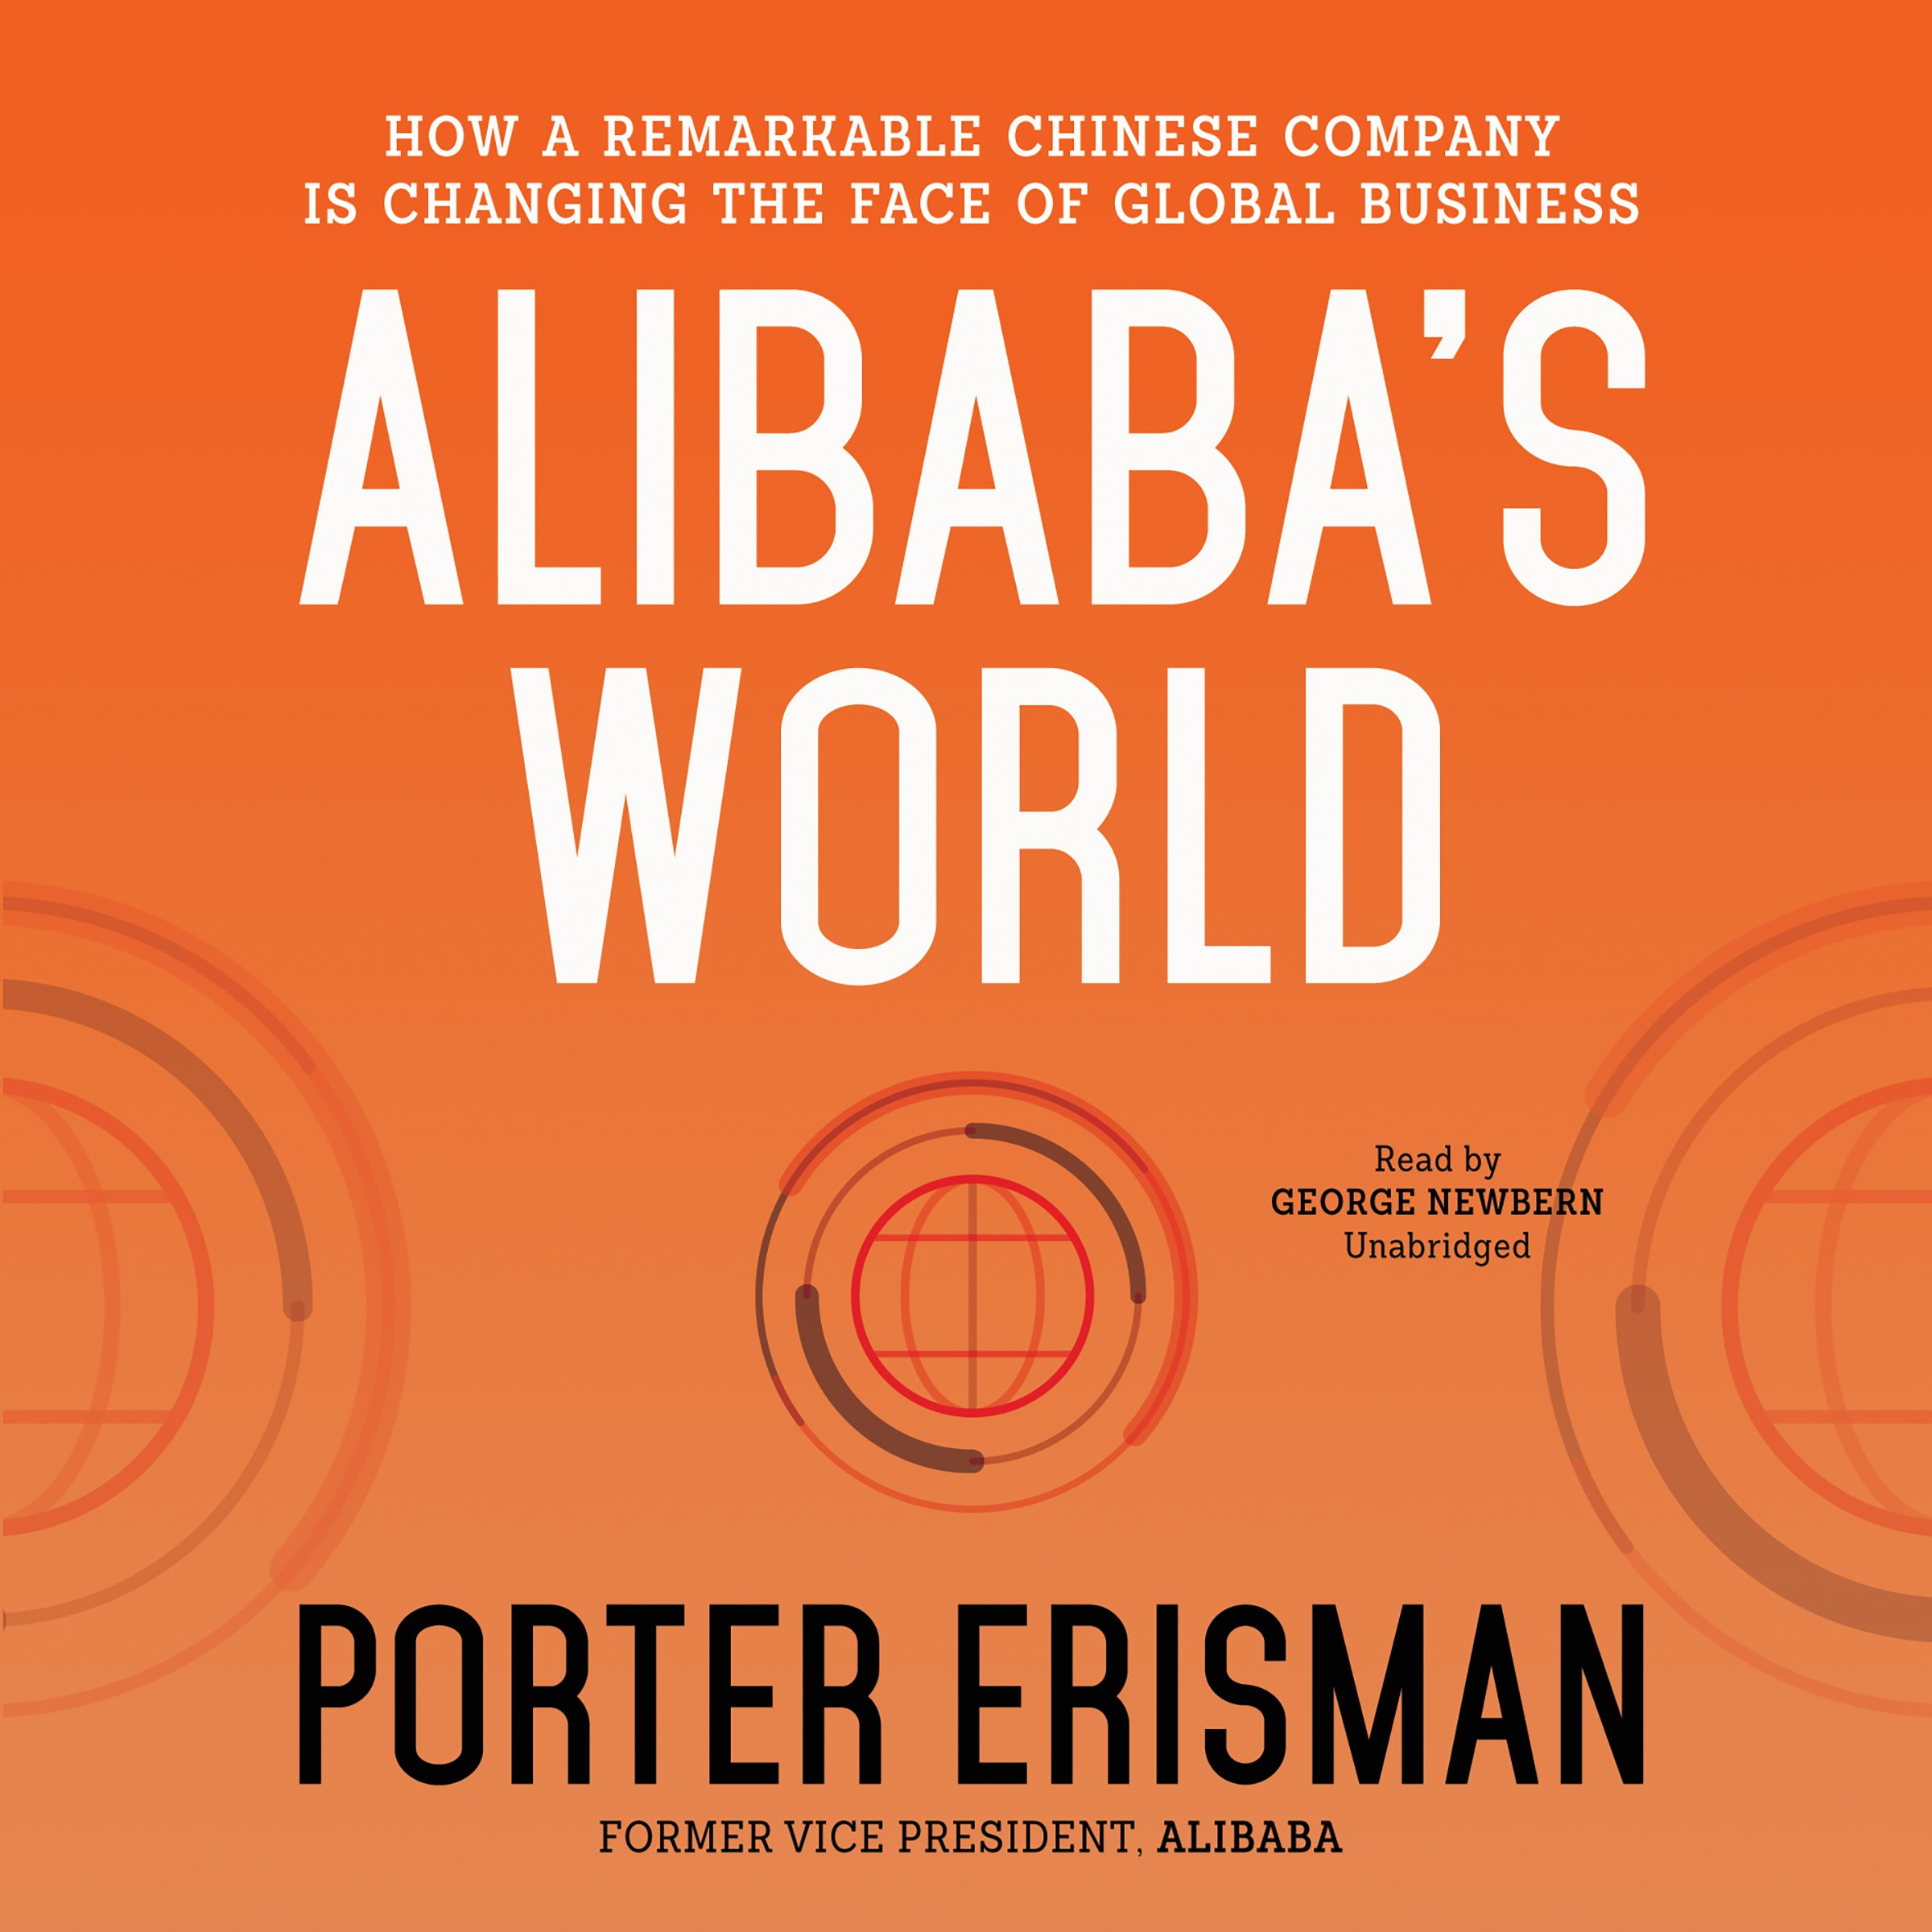 Alibabas world how a remarkable chinese company is changing the alibabas world how a remarkable chinese company is changing the face of global business porter erisman 9781483085210 amazon books stopboris Image collections